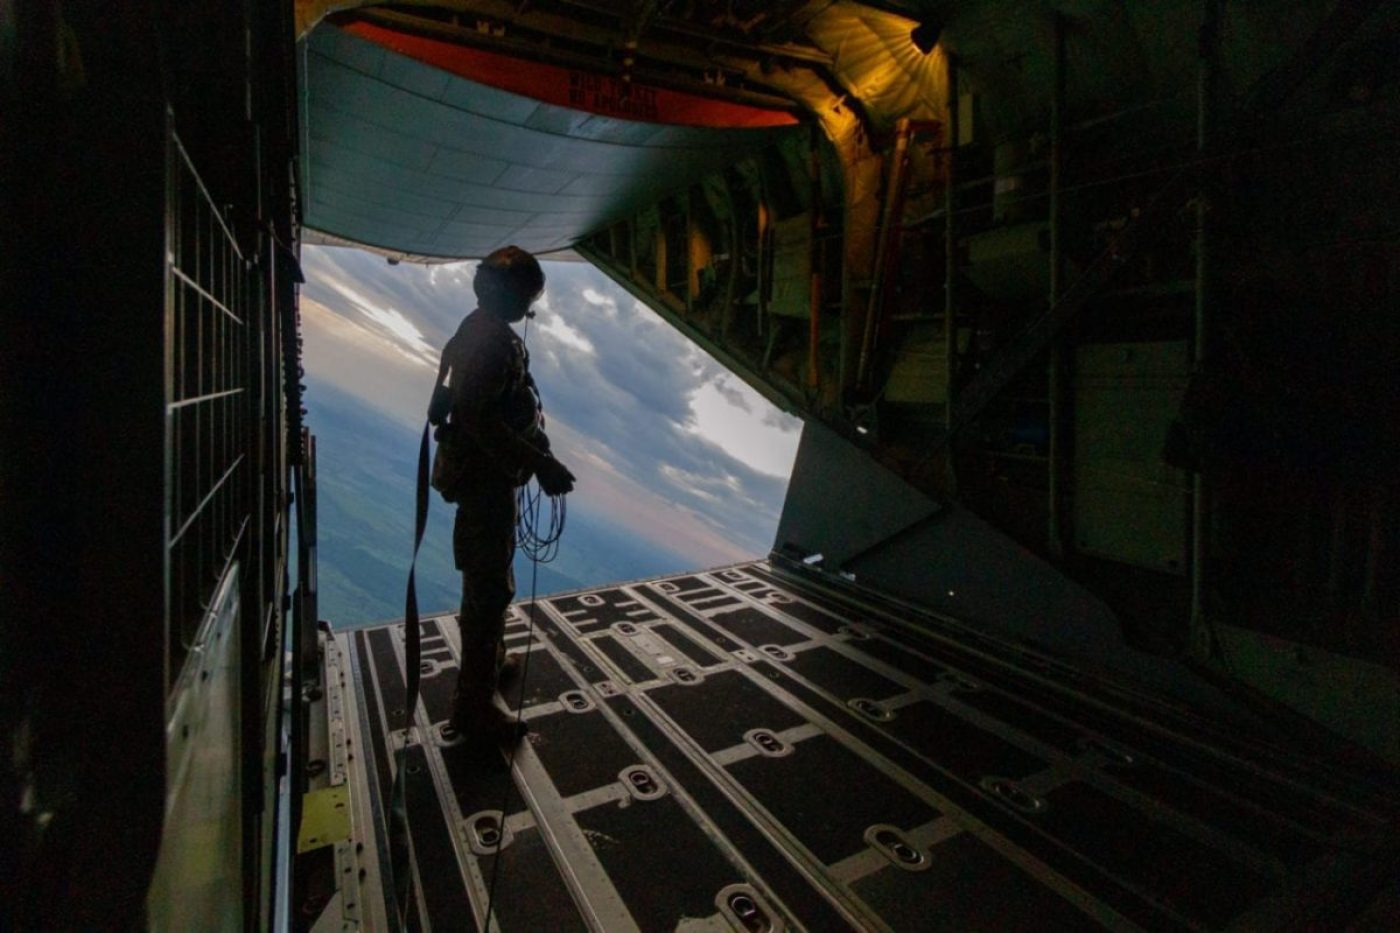 A U.S. Air Force MC-130J crew chief assigned to the 352d Special Operations Wing checks the aircraft ramp before U.S. Army Green Berets assigned to 19th Special Forces Group (Airborne), Colorado Army National Guard, conduct an airborne operation over Calarasi, Romania June 11, 2019 as part of Trojan Footprint. Trojan Footprint is an annual U.S. Special Operations Command Europe-led exercise that incorporates Allied and partner special operations forces, this year's exercise brought together 1400 SOF from 10 nations for training over land, sea and air across Bulgaria, Hungary, Romania and the Black Sea. (U.S. Army National Guard photo by Sgt. Ashley Low)